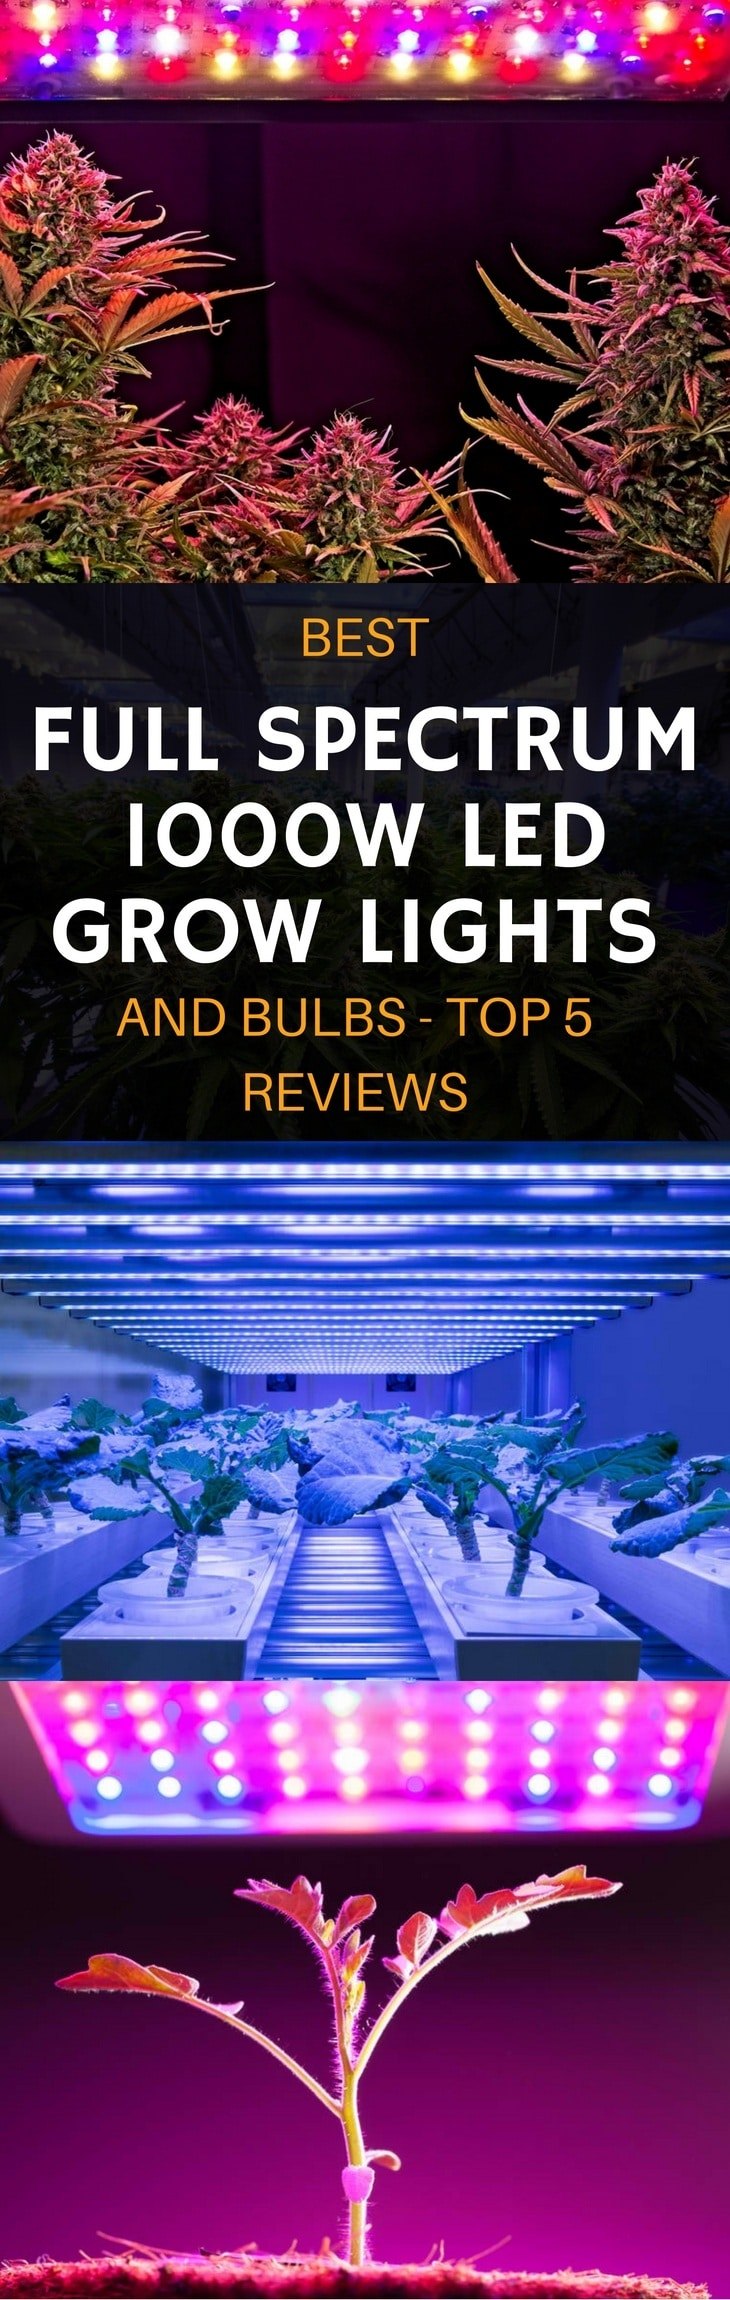 best full spectrum 1000w LED grow lights pin it